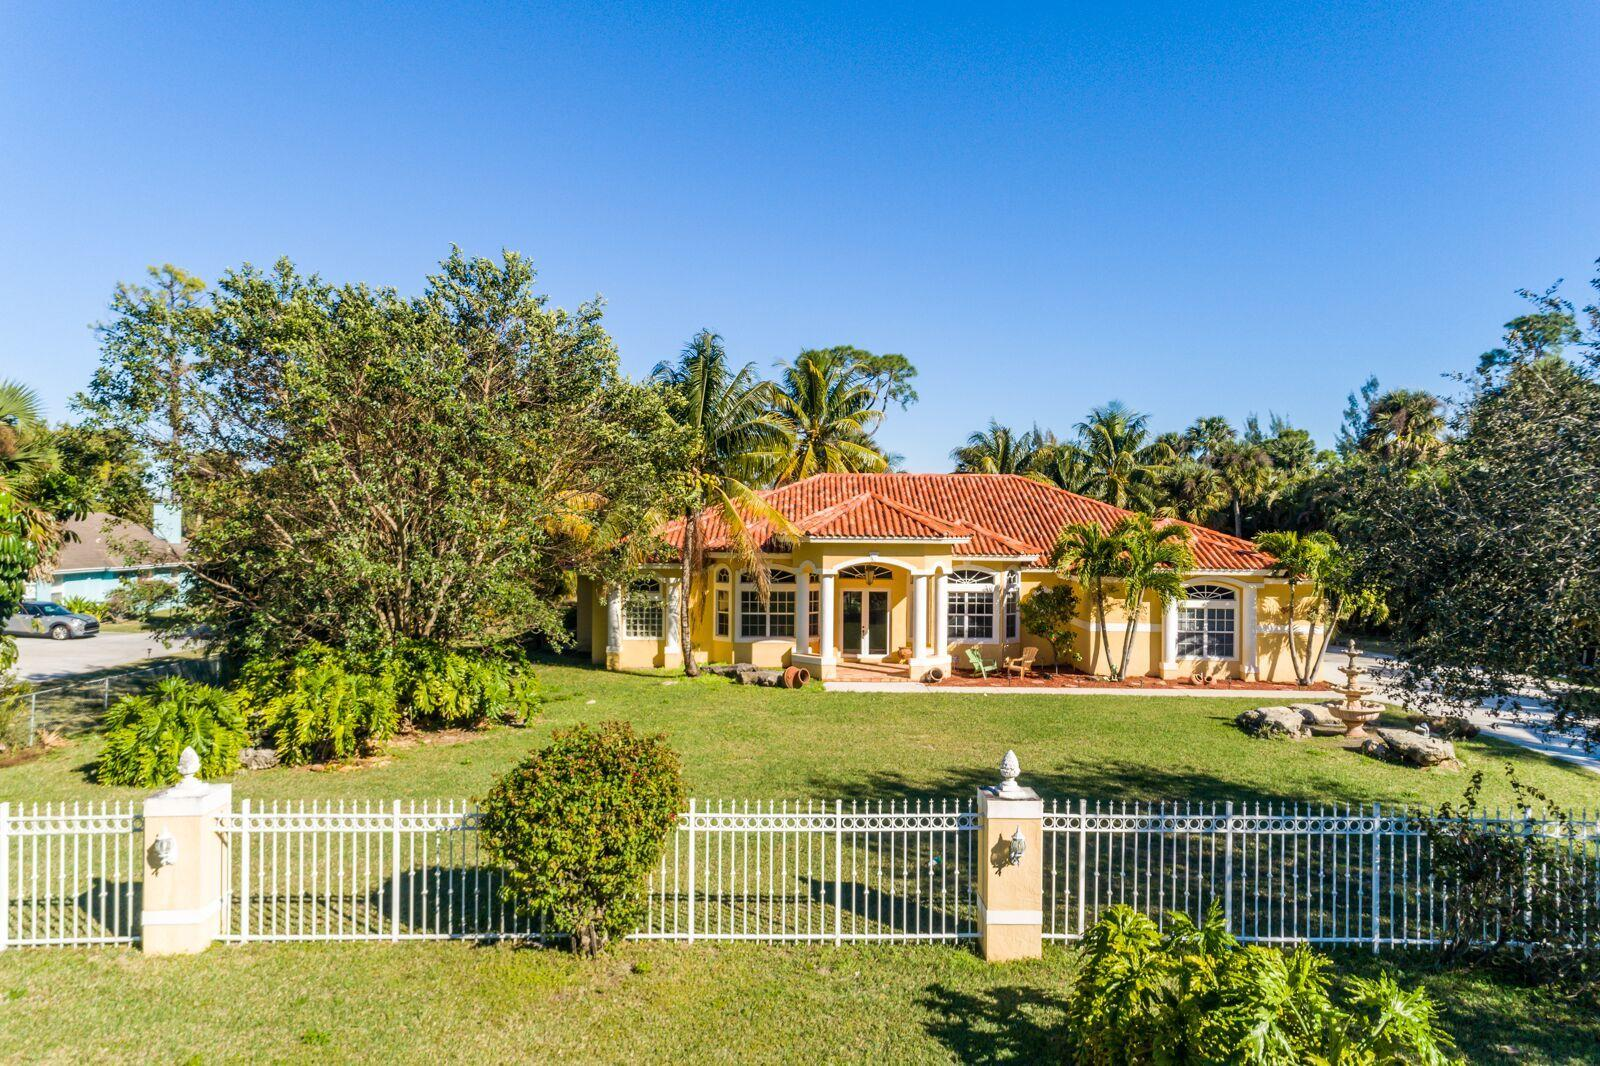 1077 Rosetta Trail, West Palm Beach, Florida 33411, 4 Bedrooms Bedrooms, ,3 BathroomsBathrooms,Single Family,For Sale,Rosetta,RX-10500482